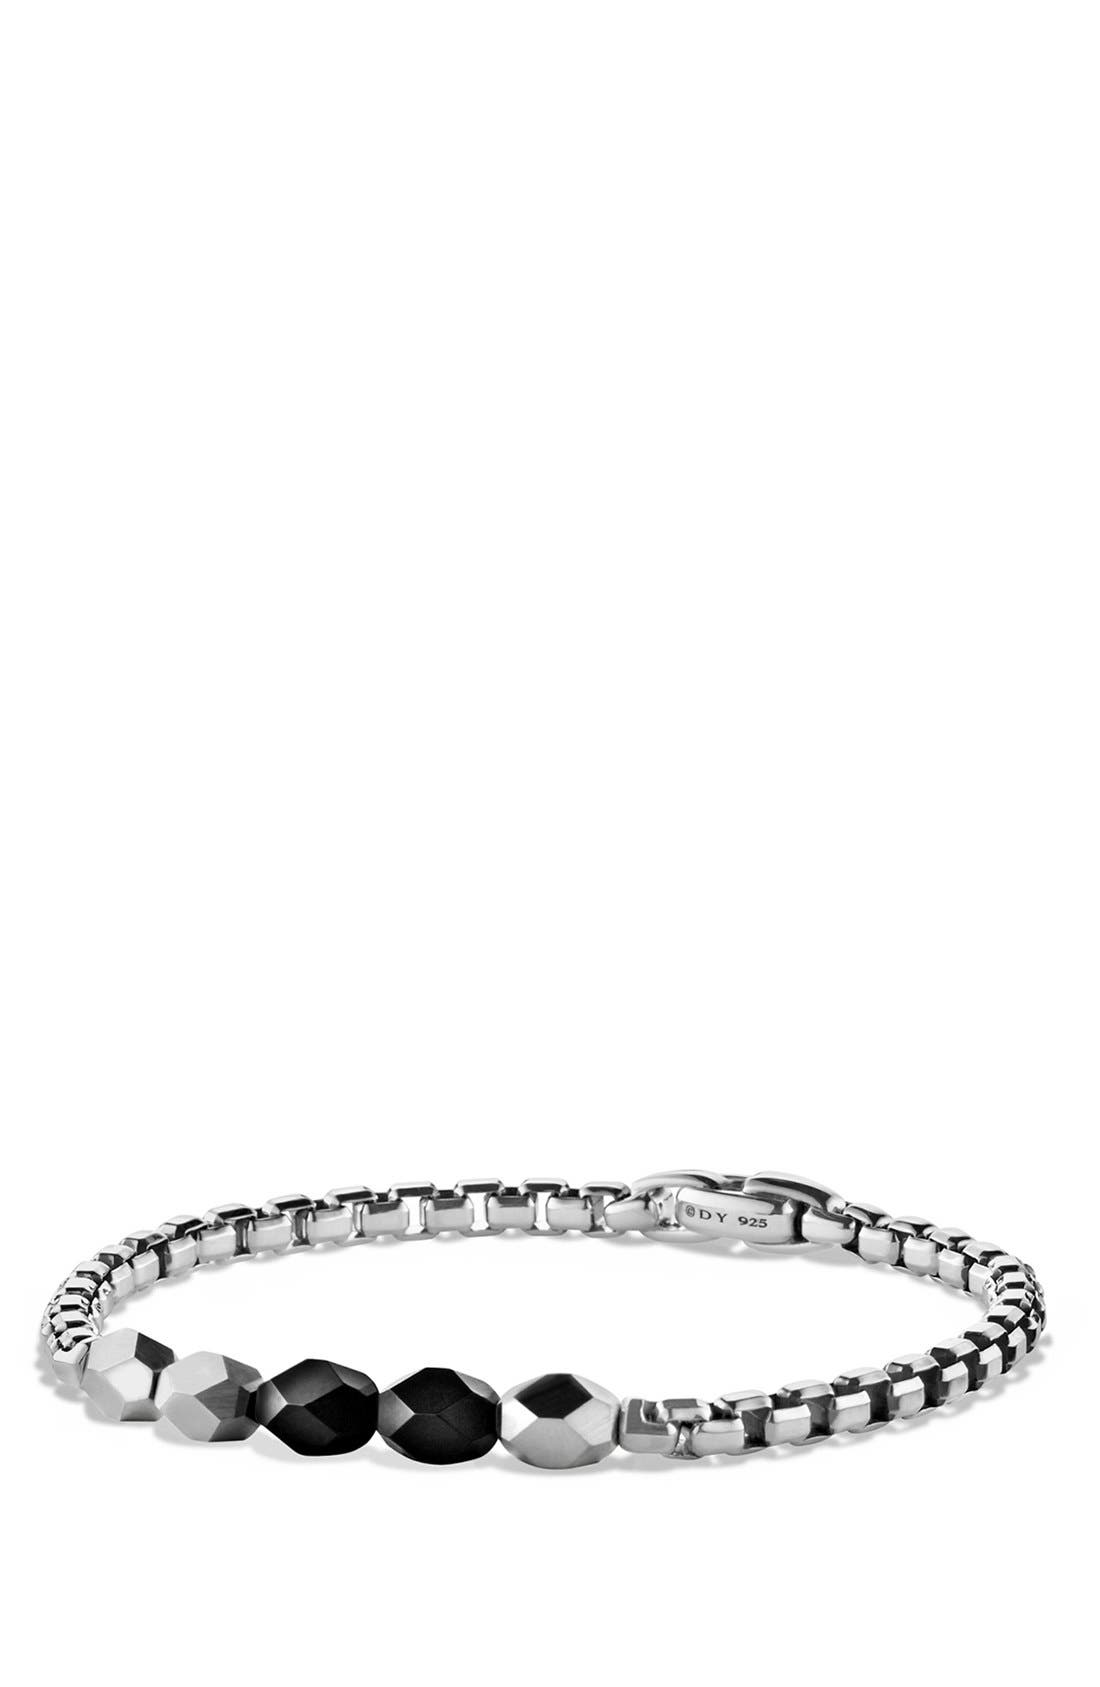 David Yurman 'Faceted' Metal Bracelet